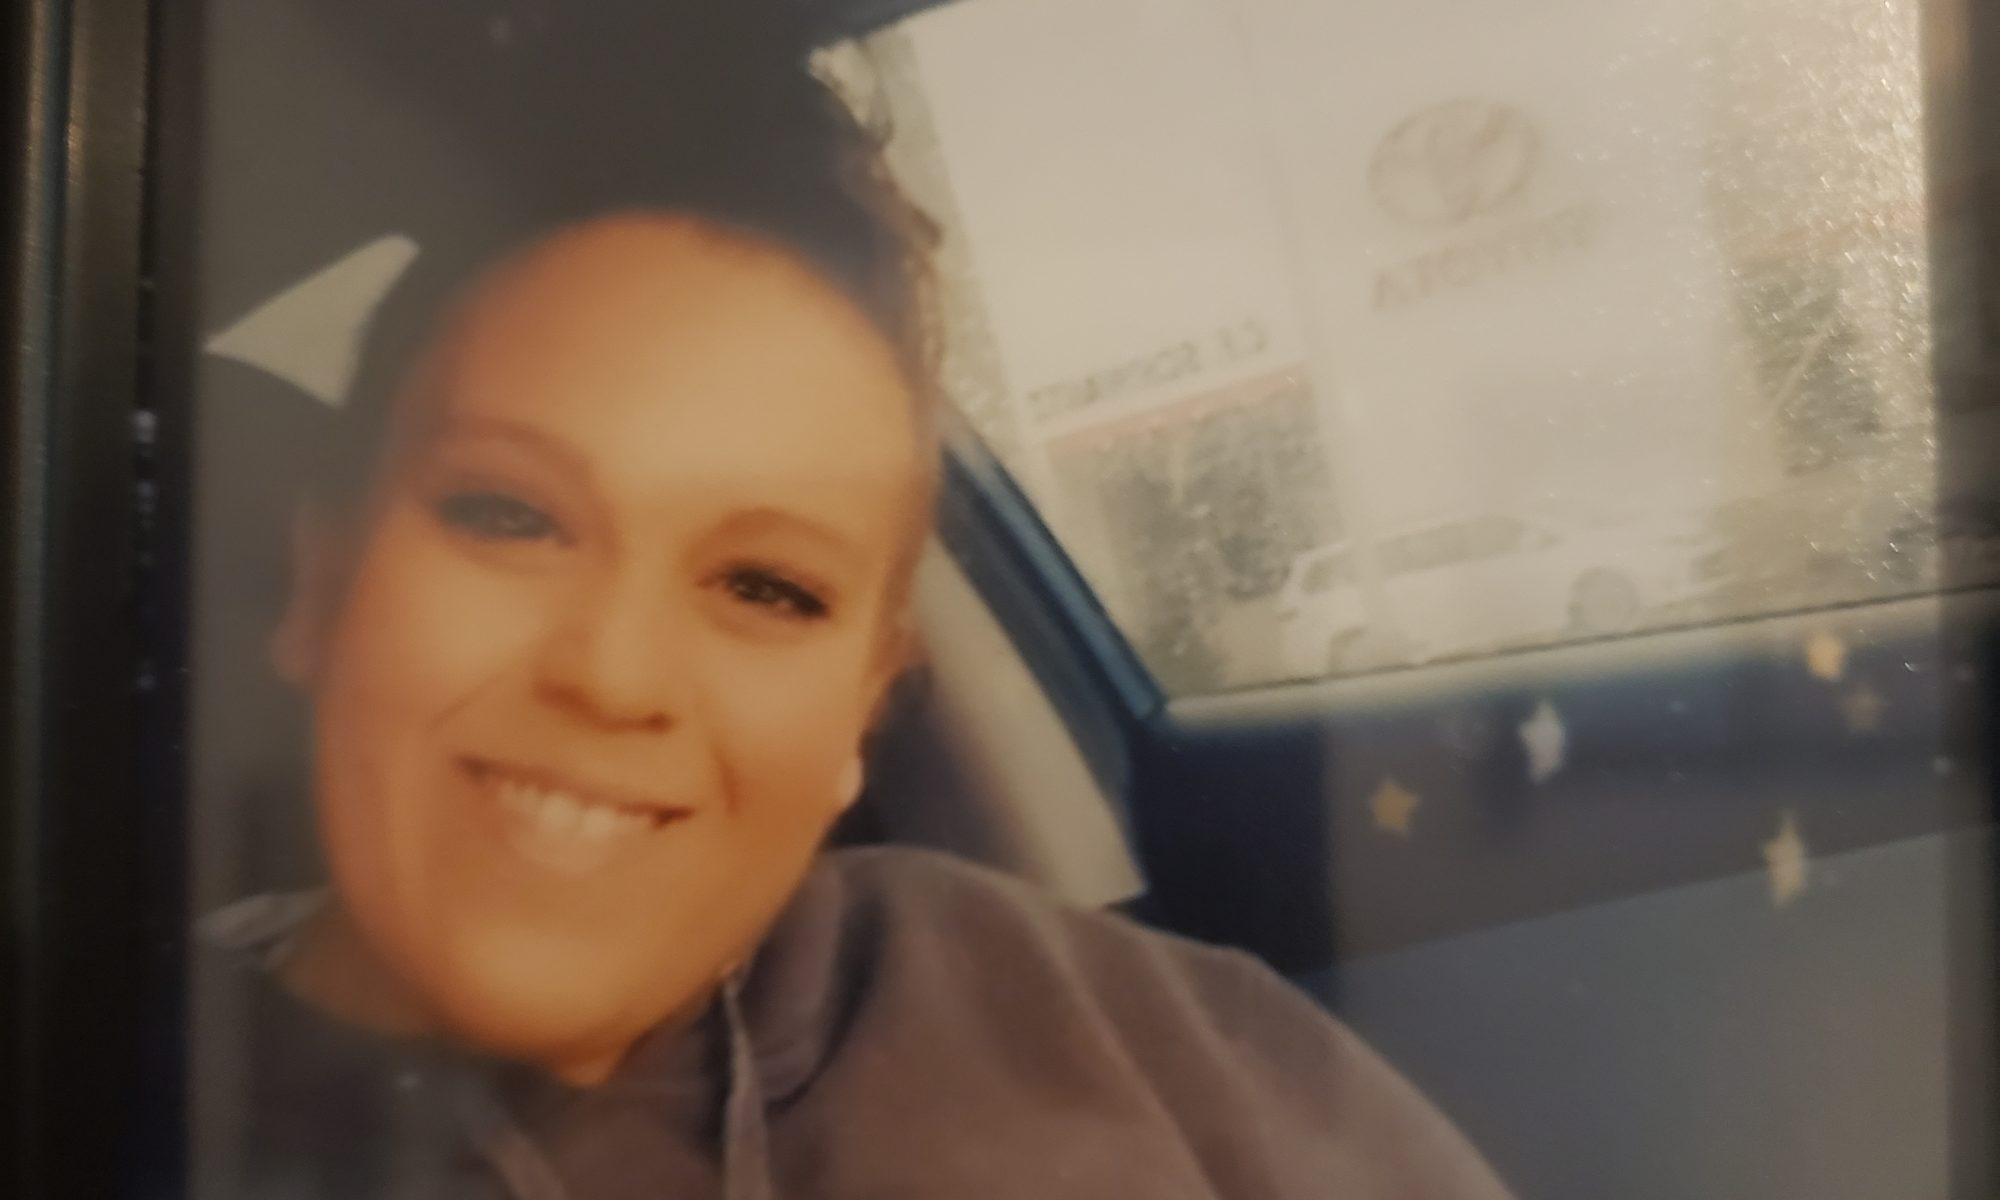 Caitlin Ervin | 30 years old | Bridgeville, Delaware | Died - August 13th, 2019